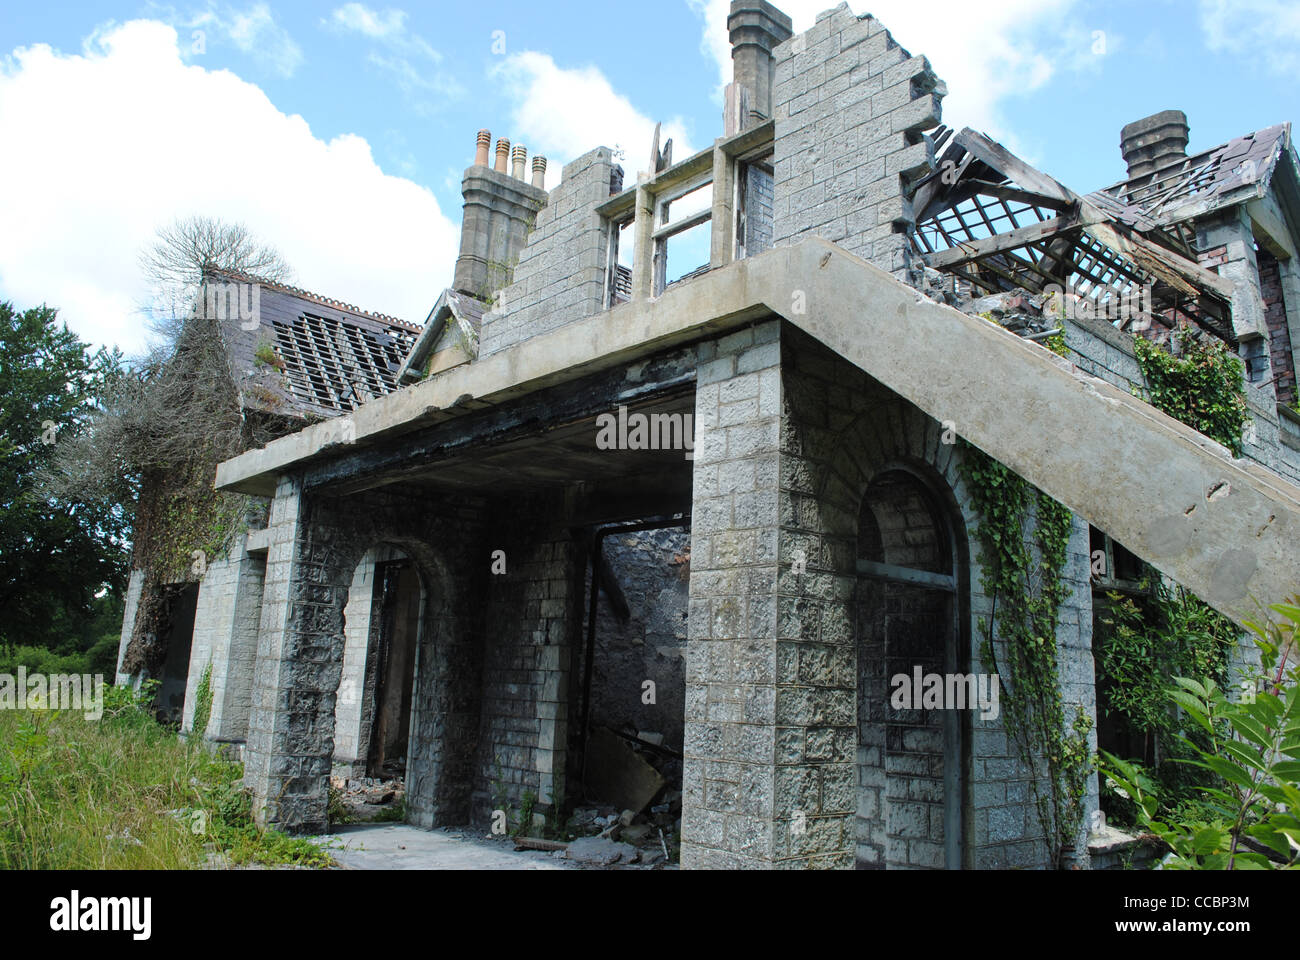 Abandoned, run down house on the outskirts of Bridgend, South Wales. - Stock Image